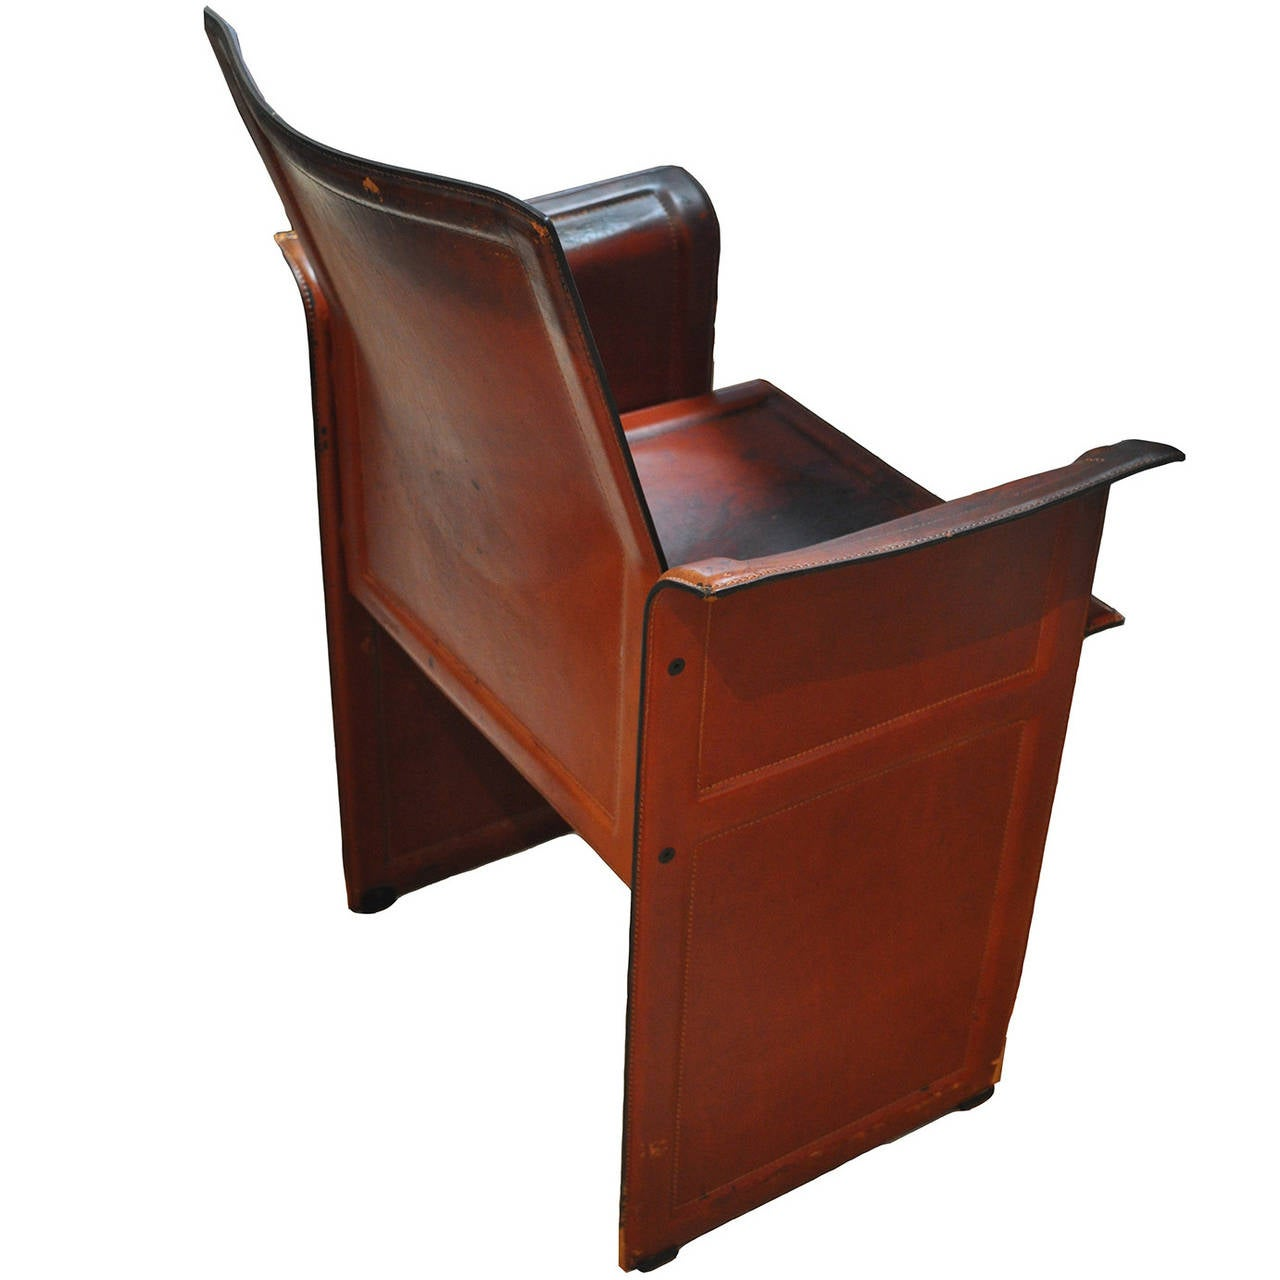 Charming Matteo Grassi Leather Armchair For Sale